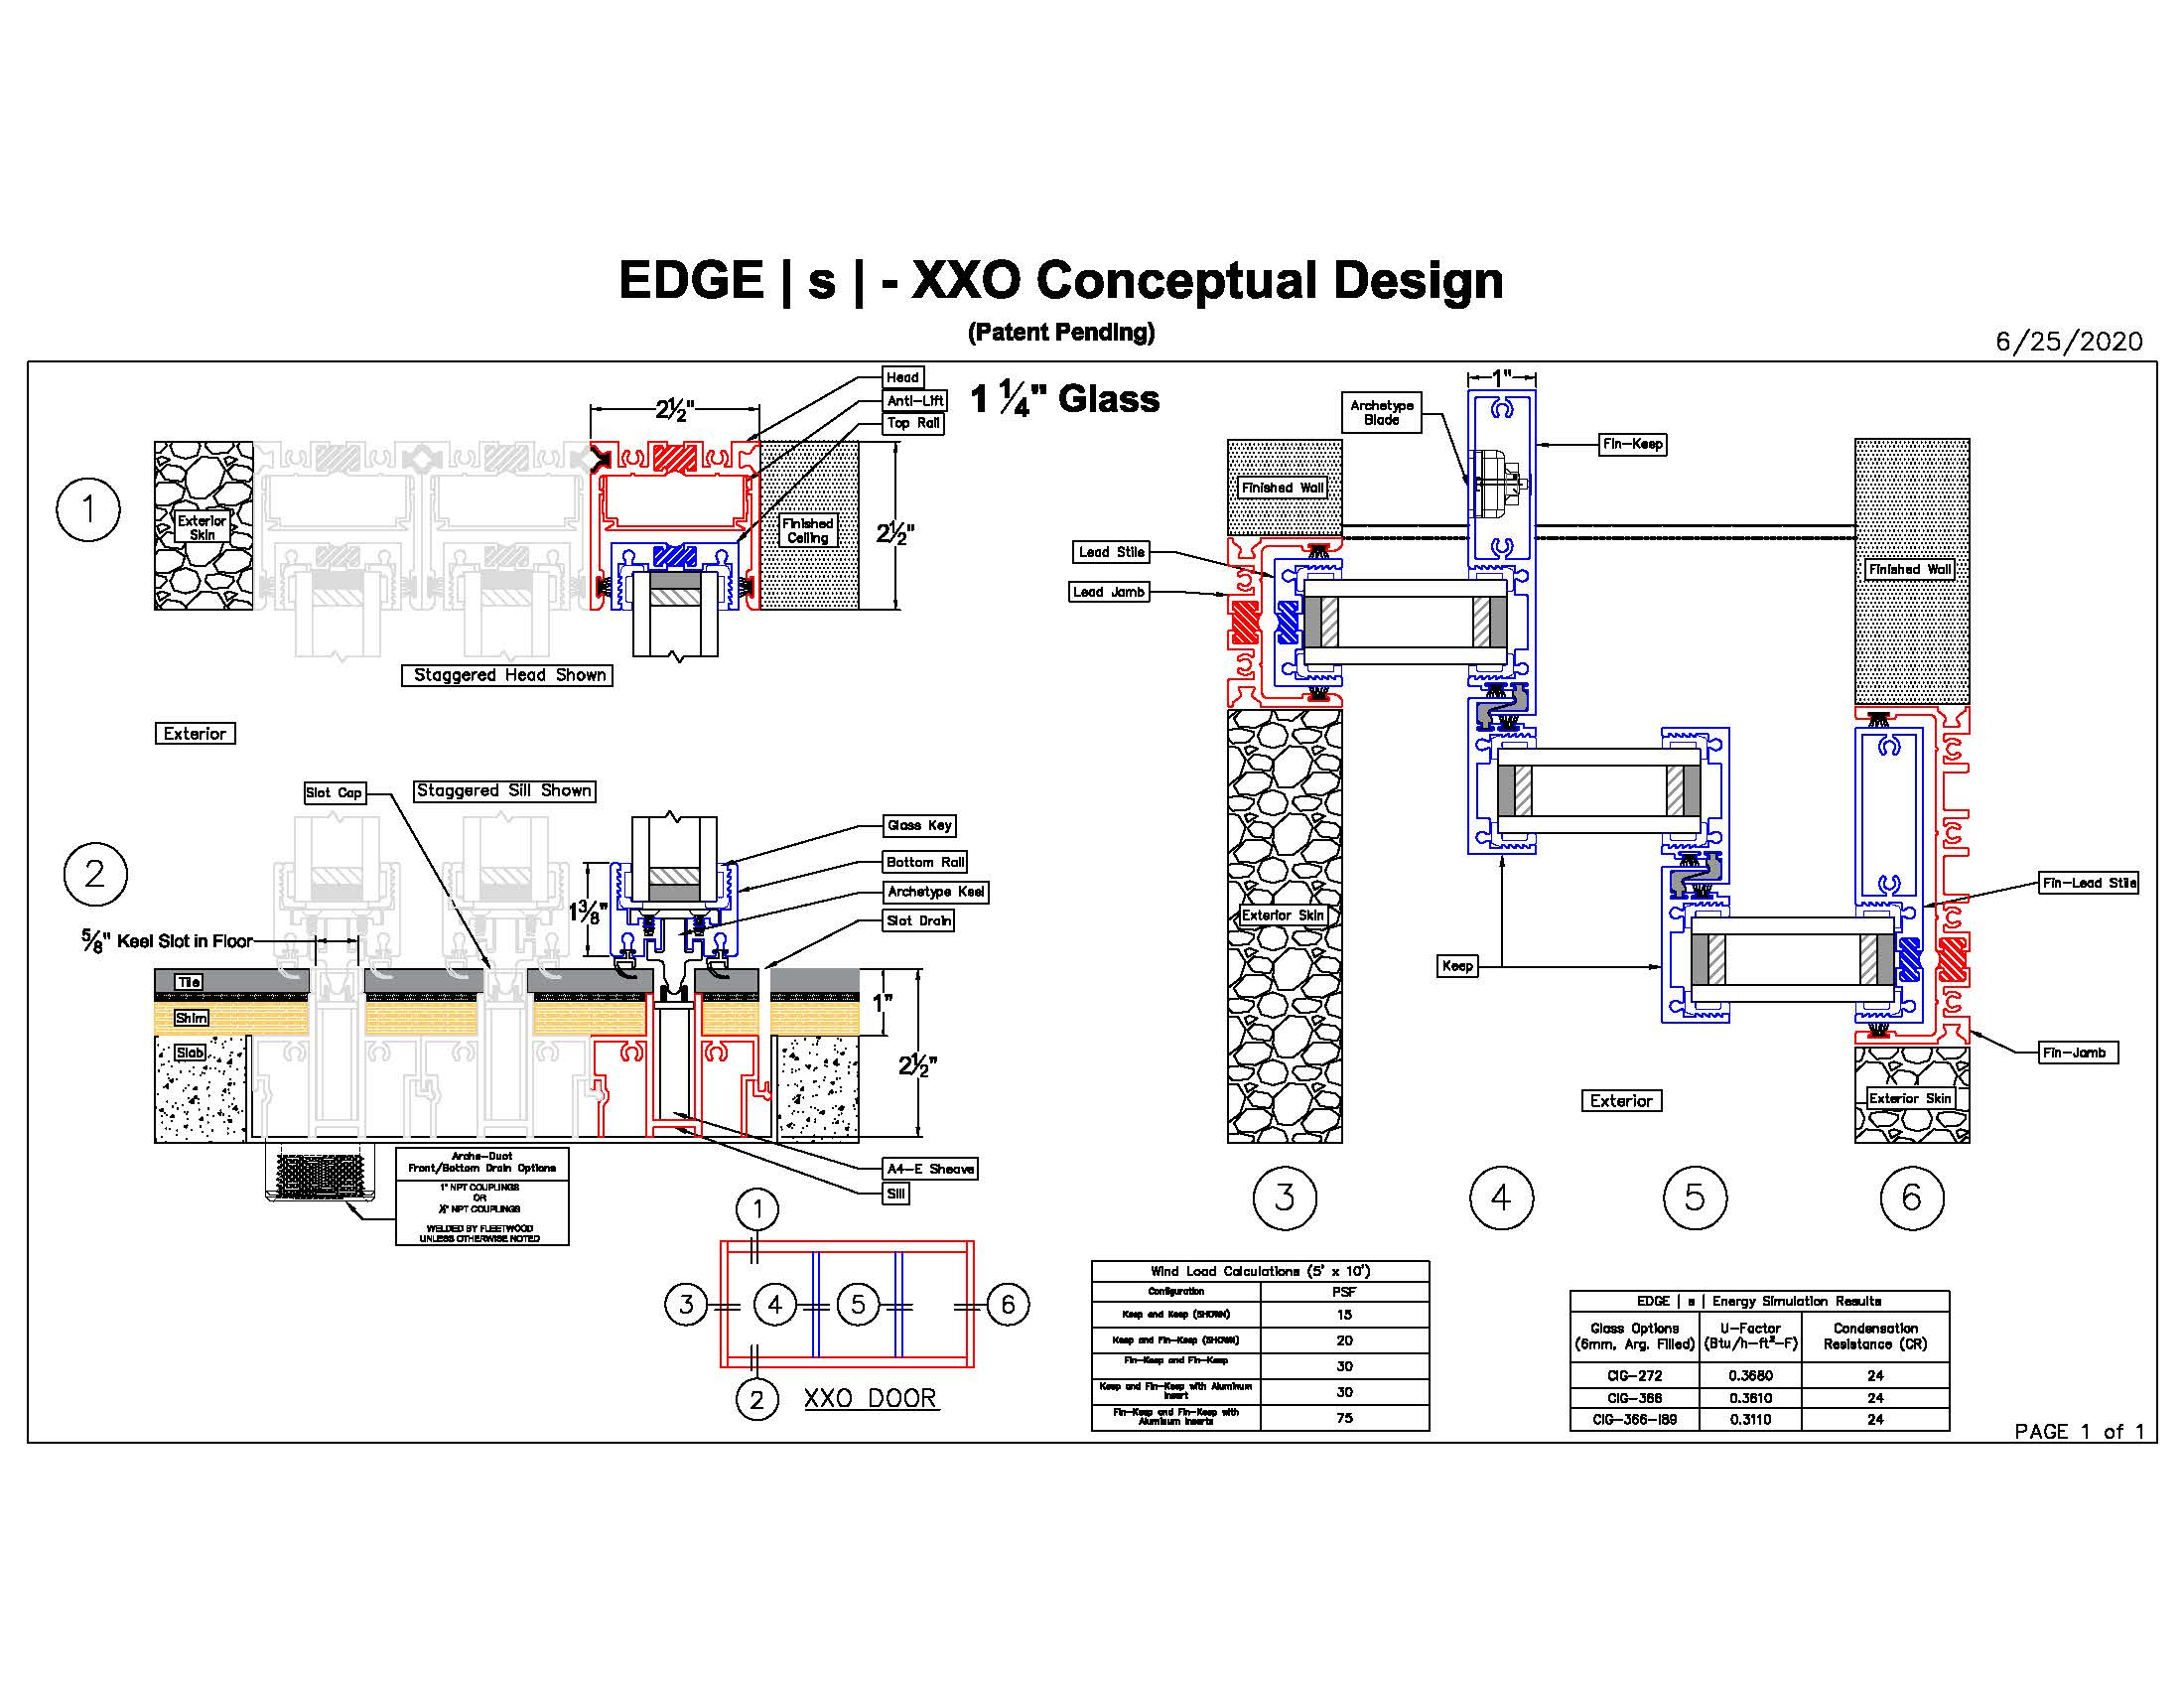 EDGE_s Conceptual Design